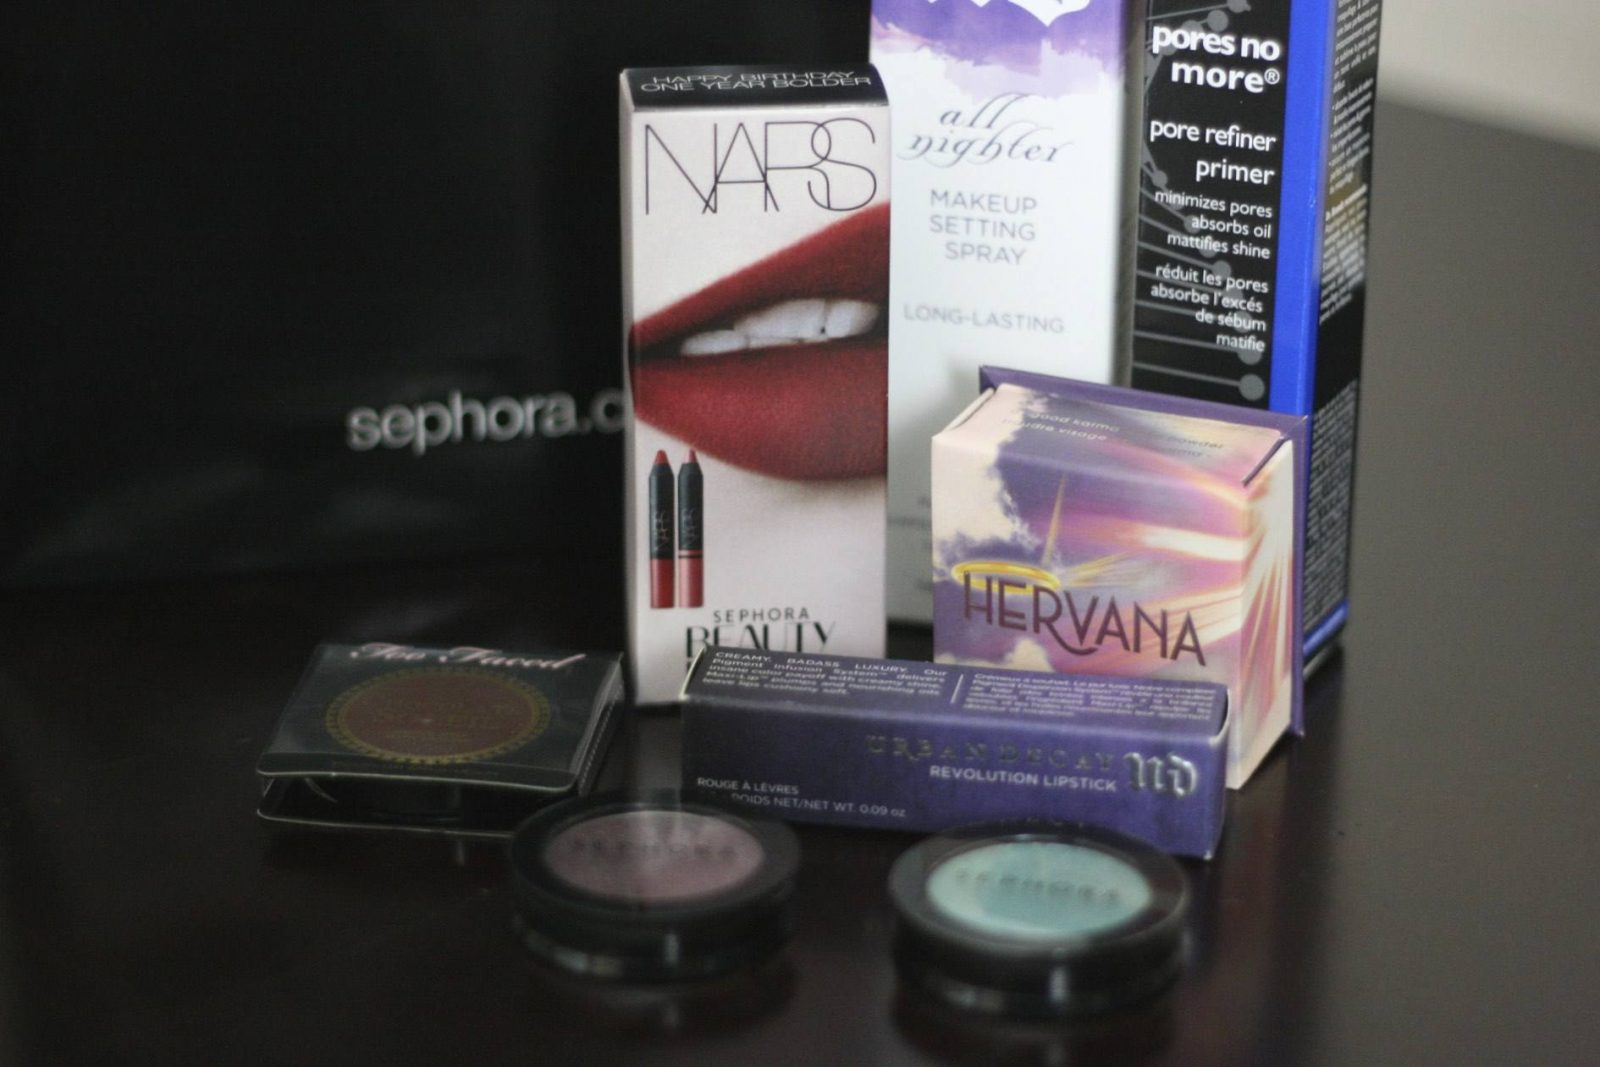 Crabtree Valley Mall haul - Sephora